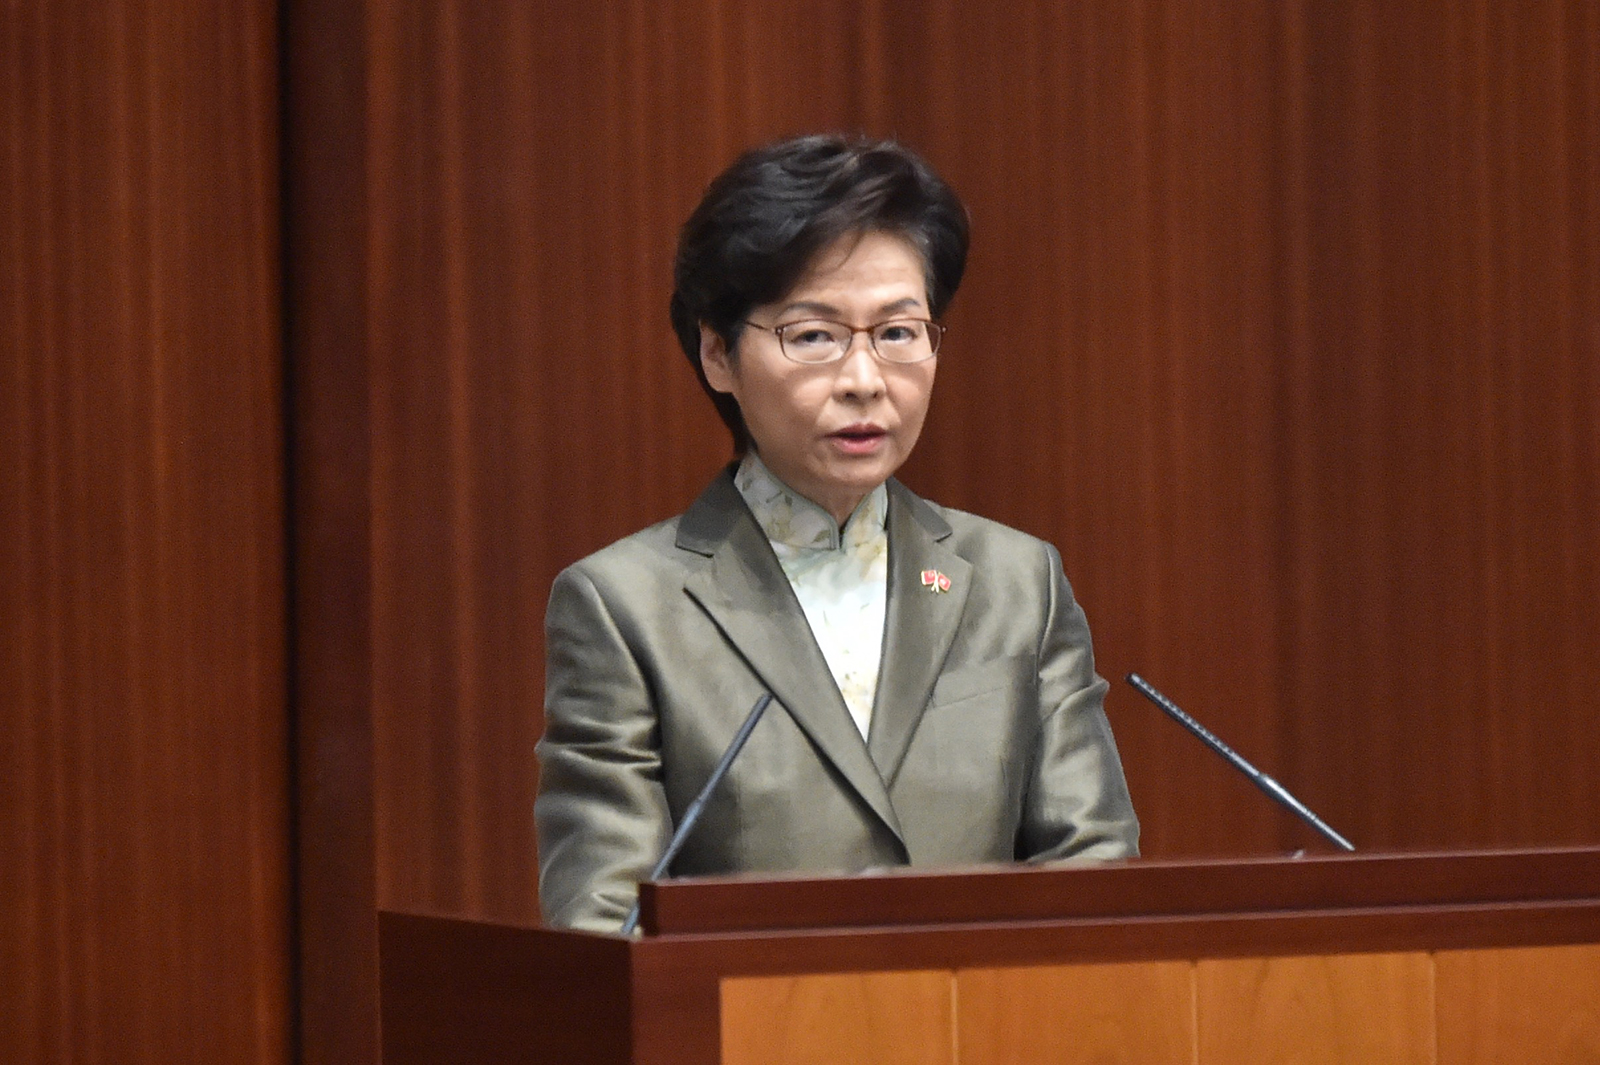 Hong Kong Chief Executive Carrie Lam delivers her annual policy address at the Legislative Council in Hong Kong, on Nov. 25.